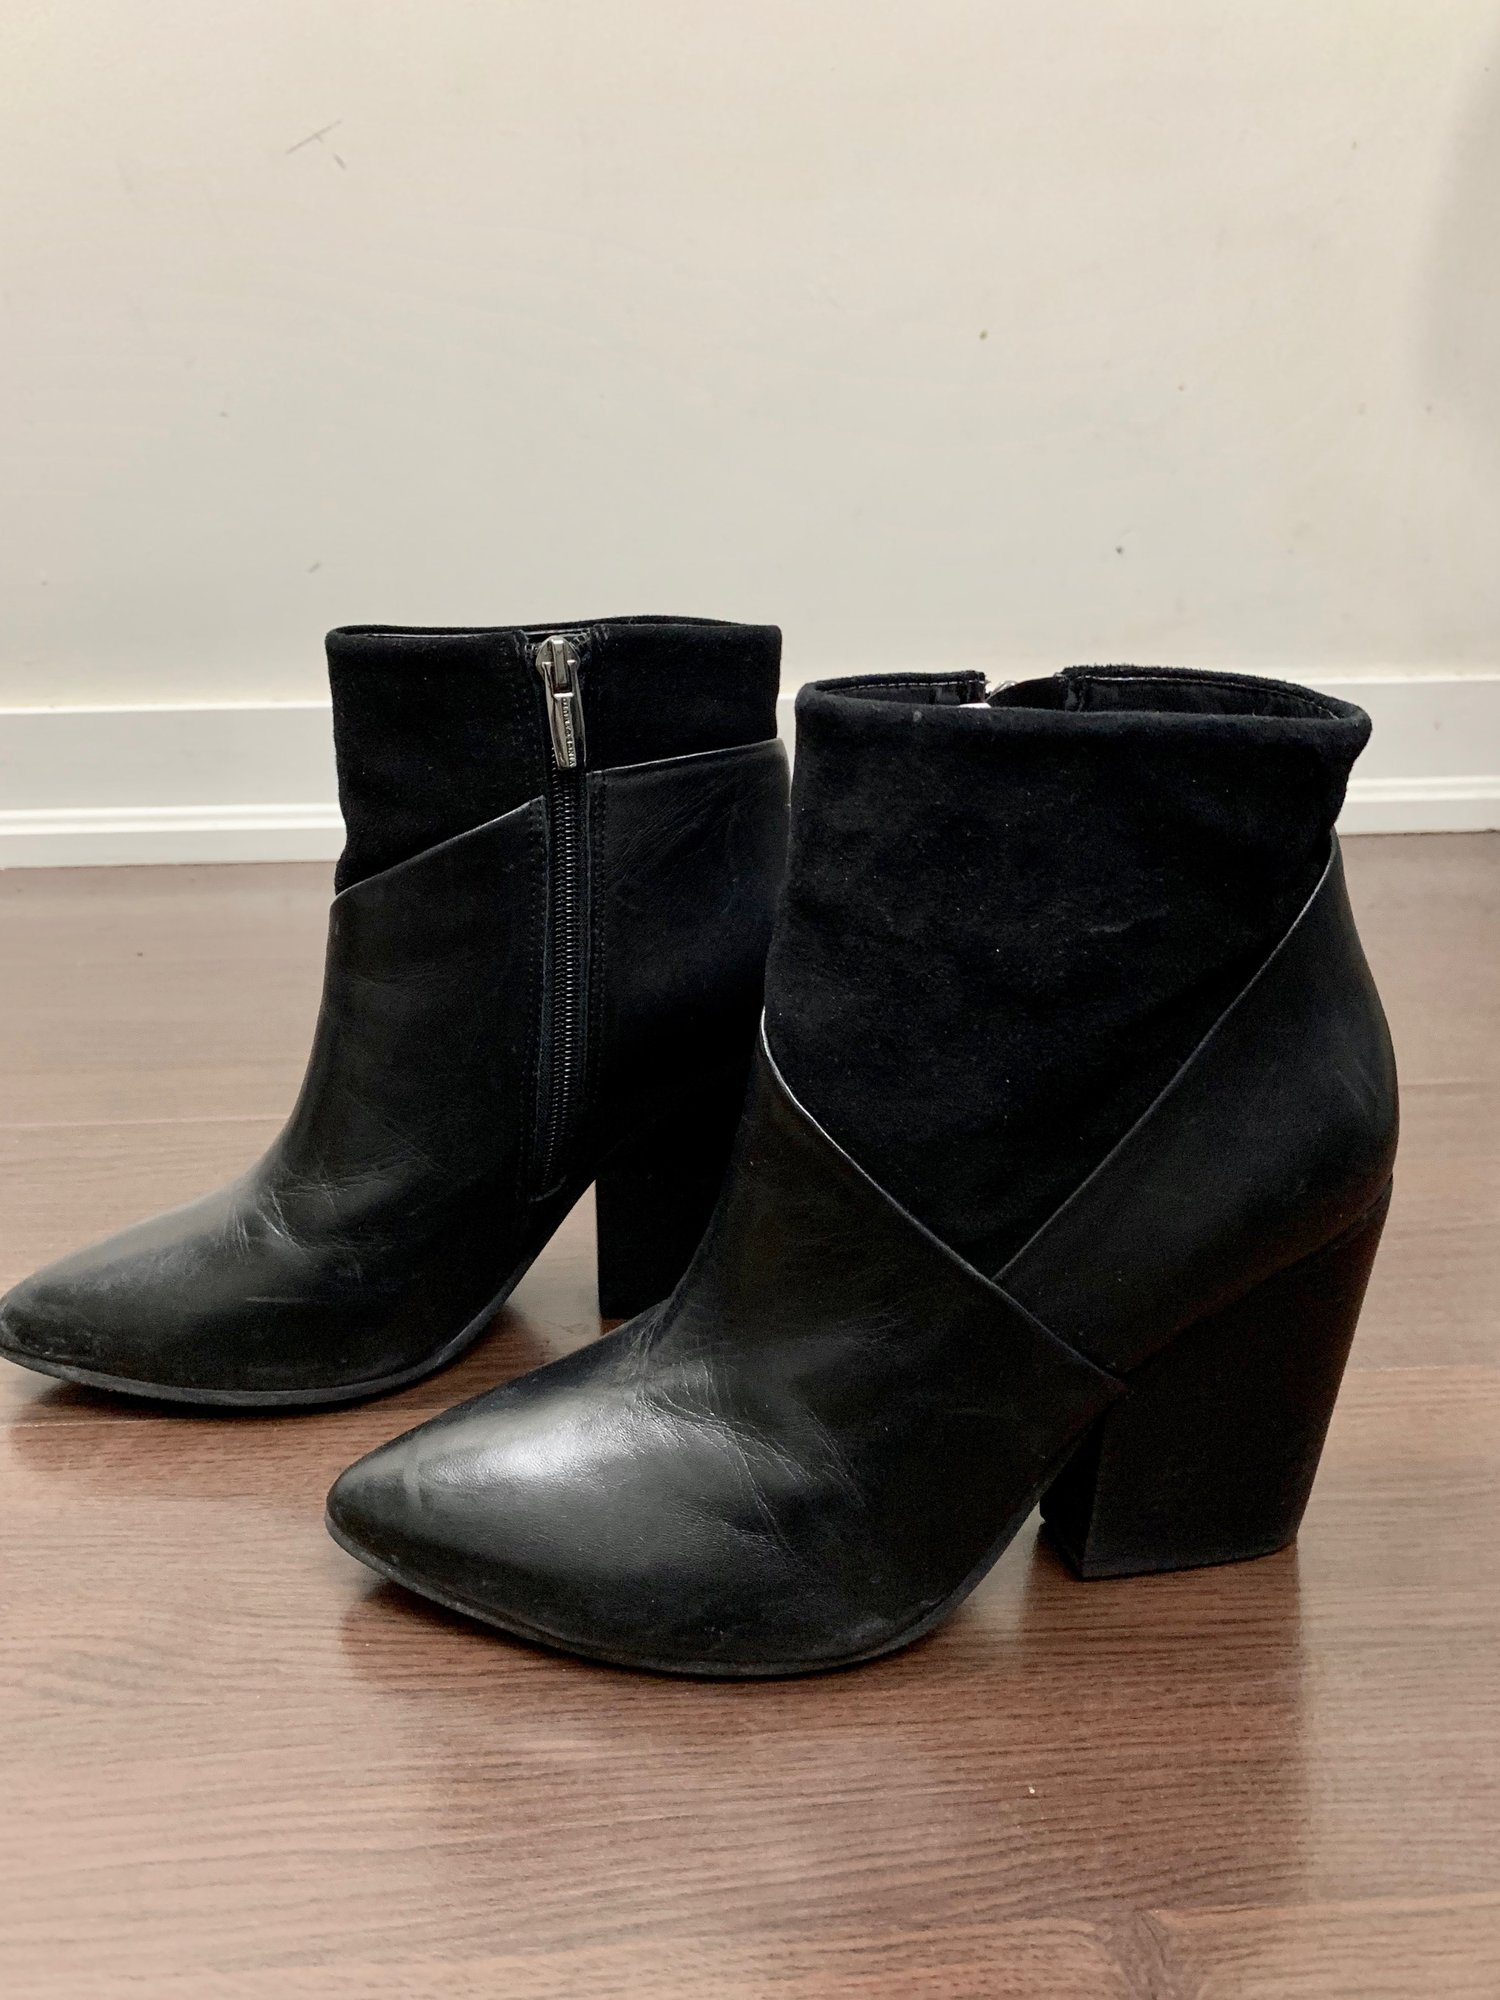 ff8e4e40645 Vince Camuto Black Leather Boots — Effortless